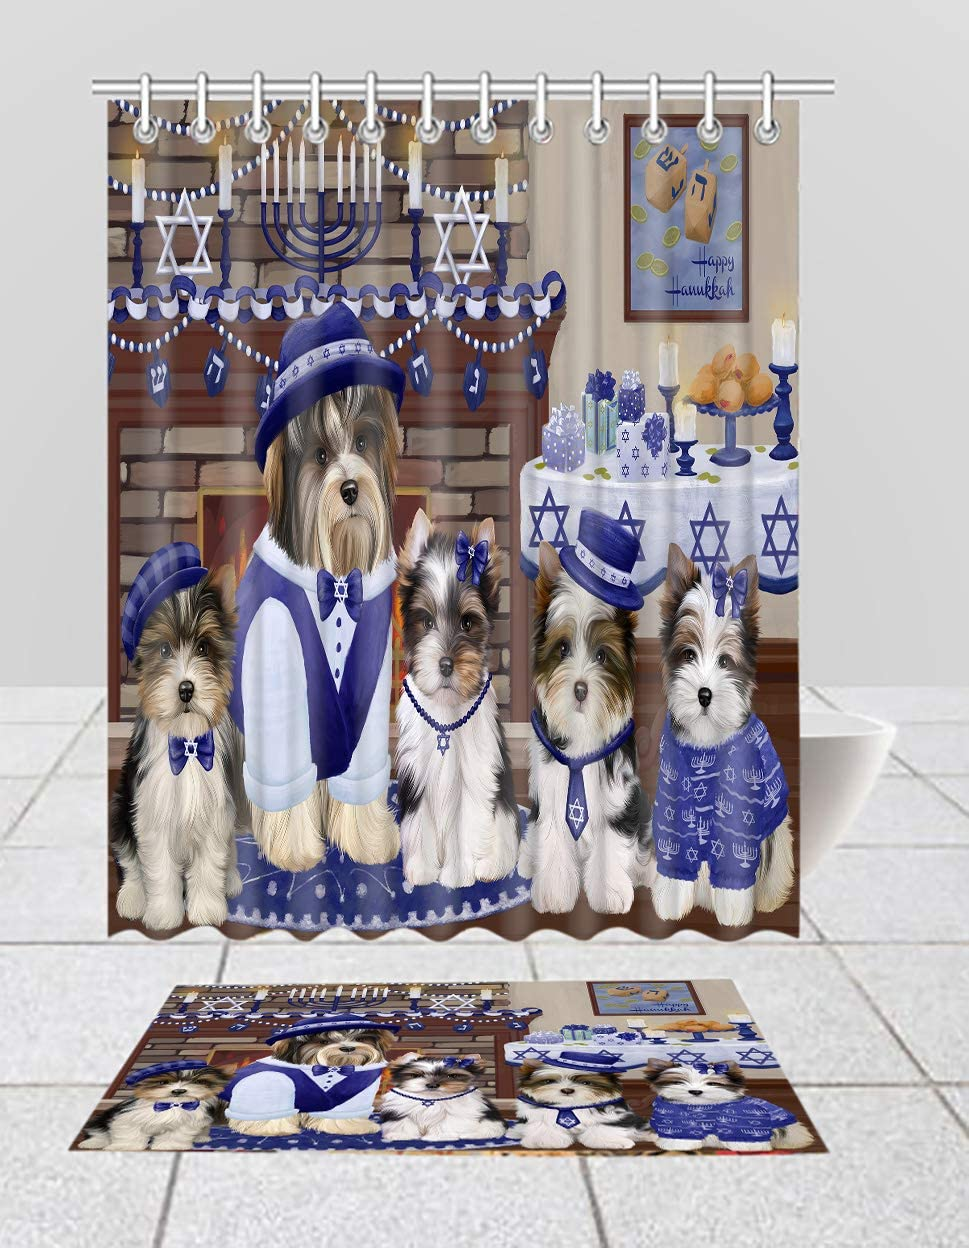 Happy Hanukkah Family Biewer Dogs Curtain Comb Max 46% OFF Mat Bath 55% OFF Shower